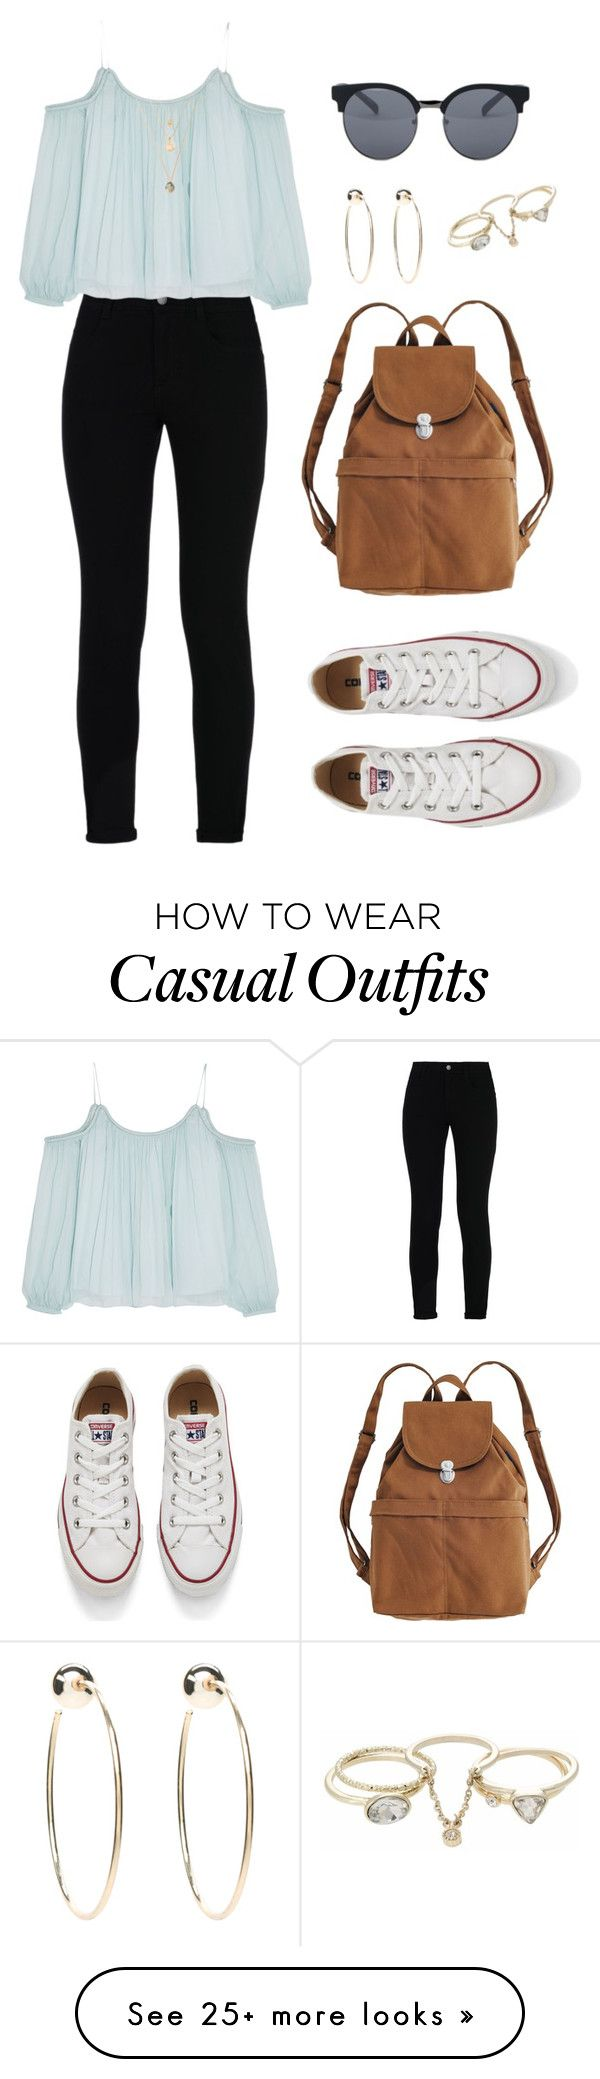 """""""Casual"""" by aowens99 on Polyvore featuring STELLA McCARTNEY, Elizabeth and James, BAGGU, Converse, Quay, Lipsy and Bebe"""